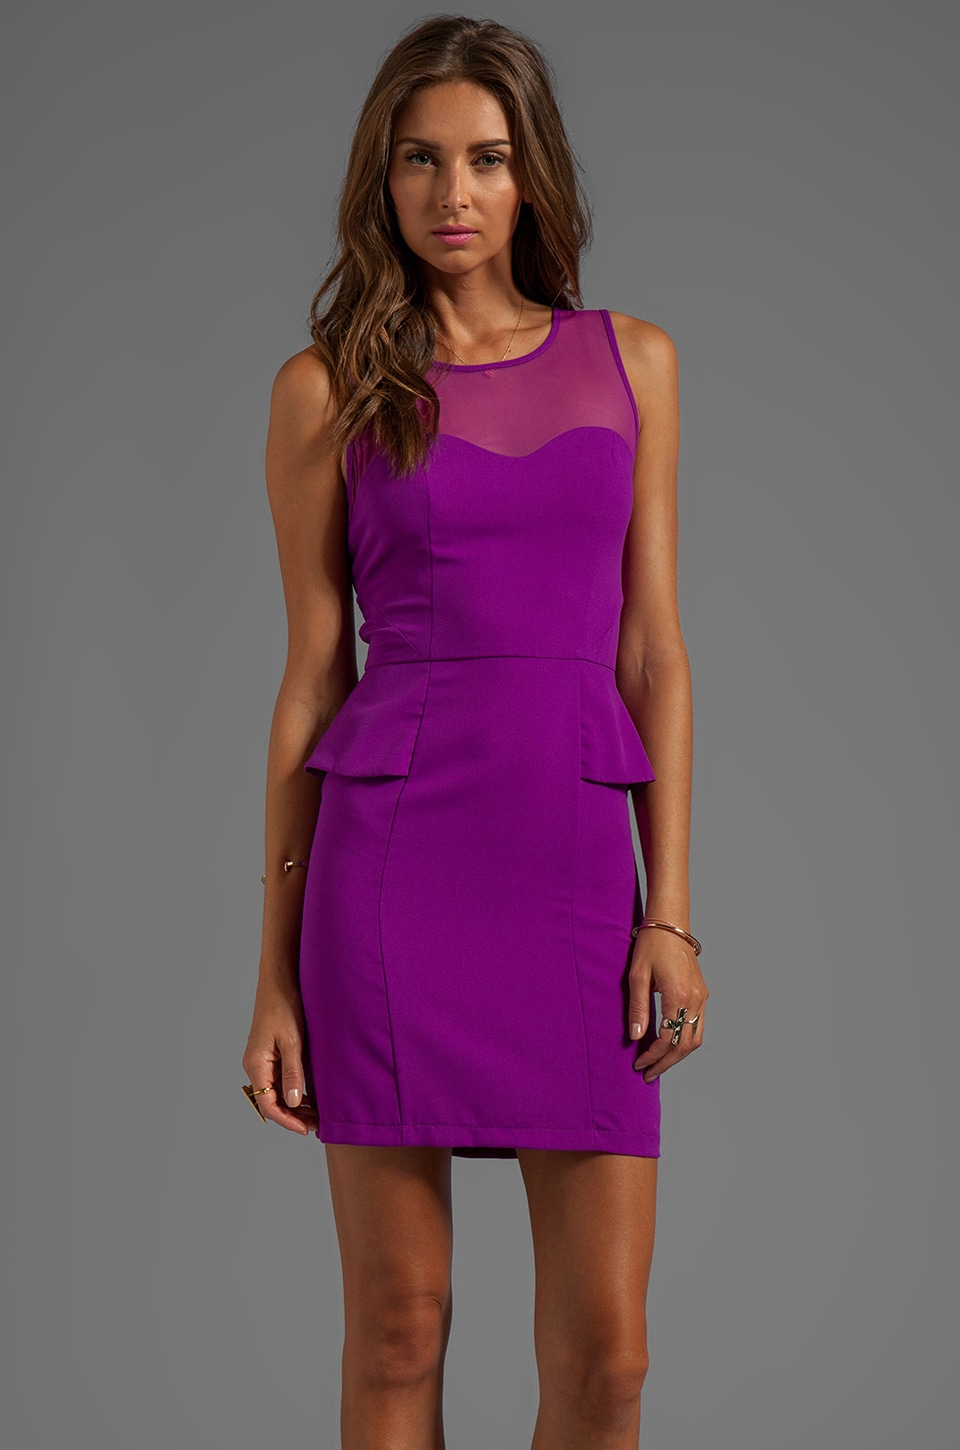 Greylin Melina Peplum Dress in Orchid